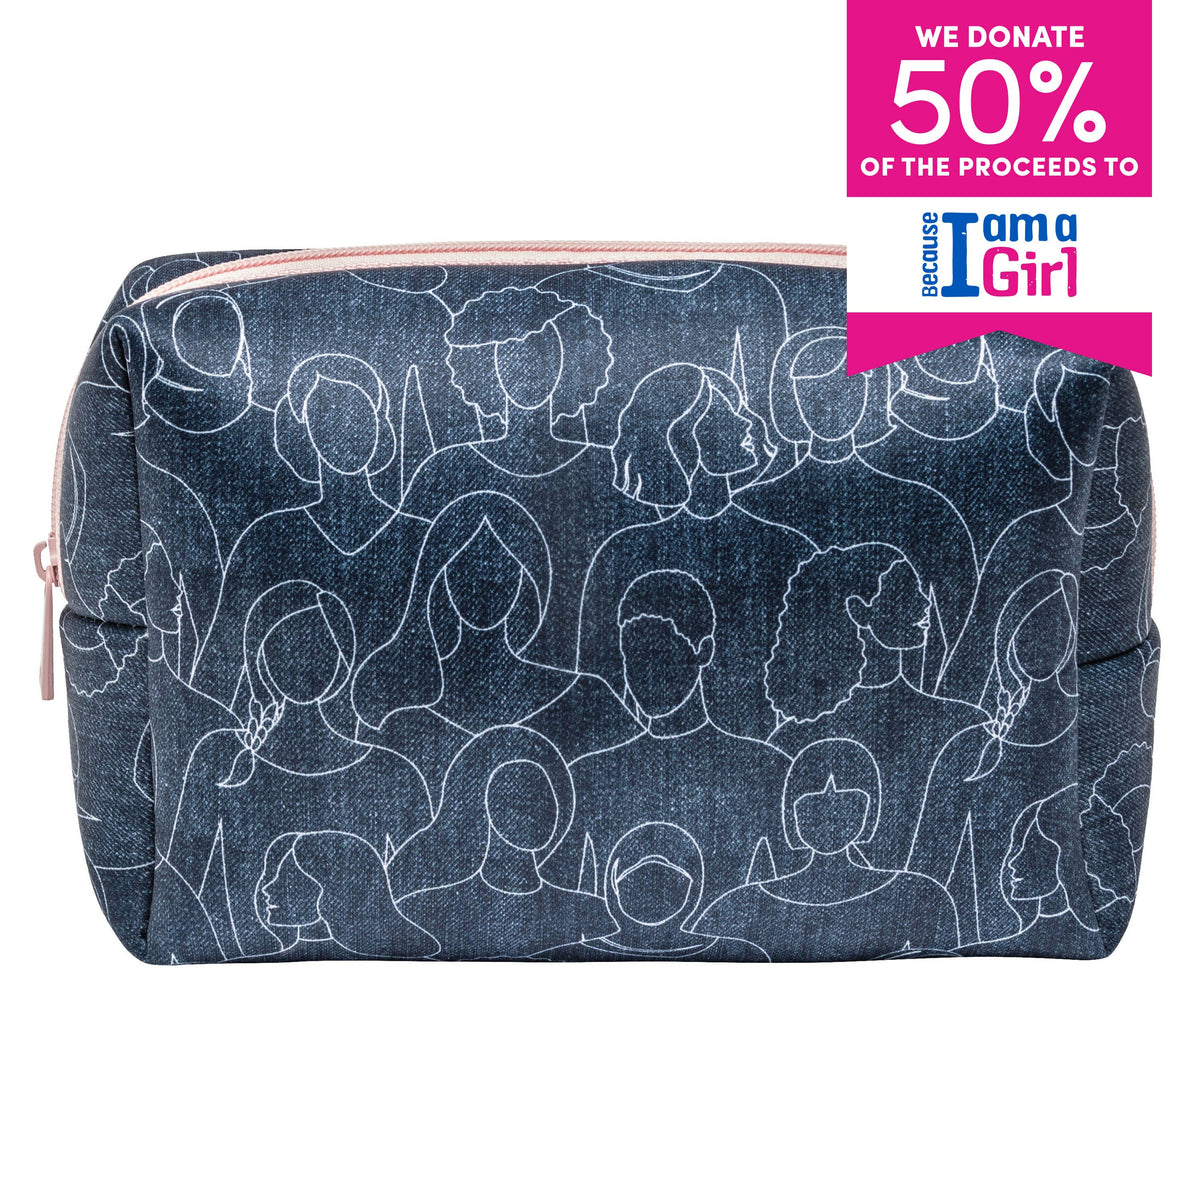 LARGE COSMETIC CASE - BECAUSE I AM A GIRL Dark Slate Gray MYTAGALONGS